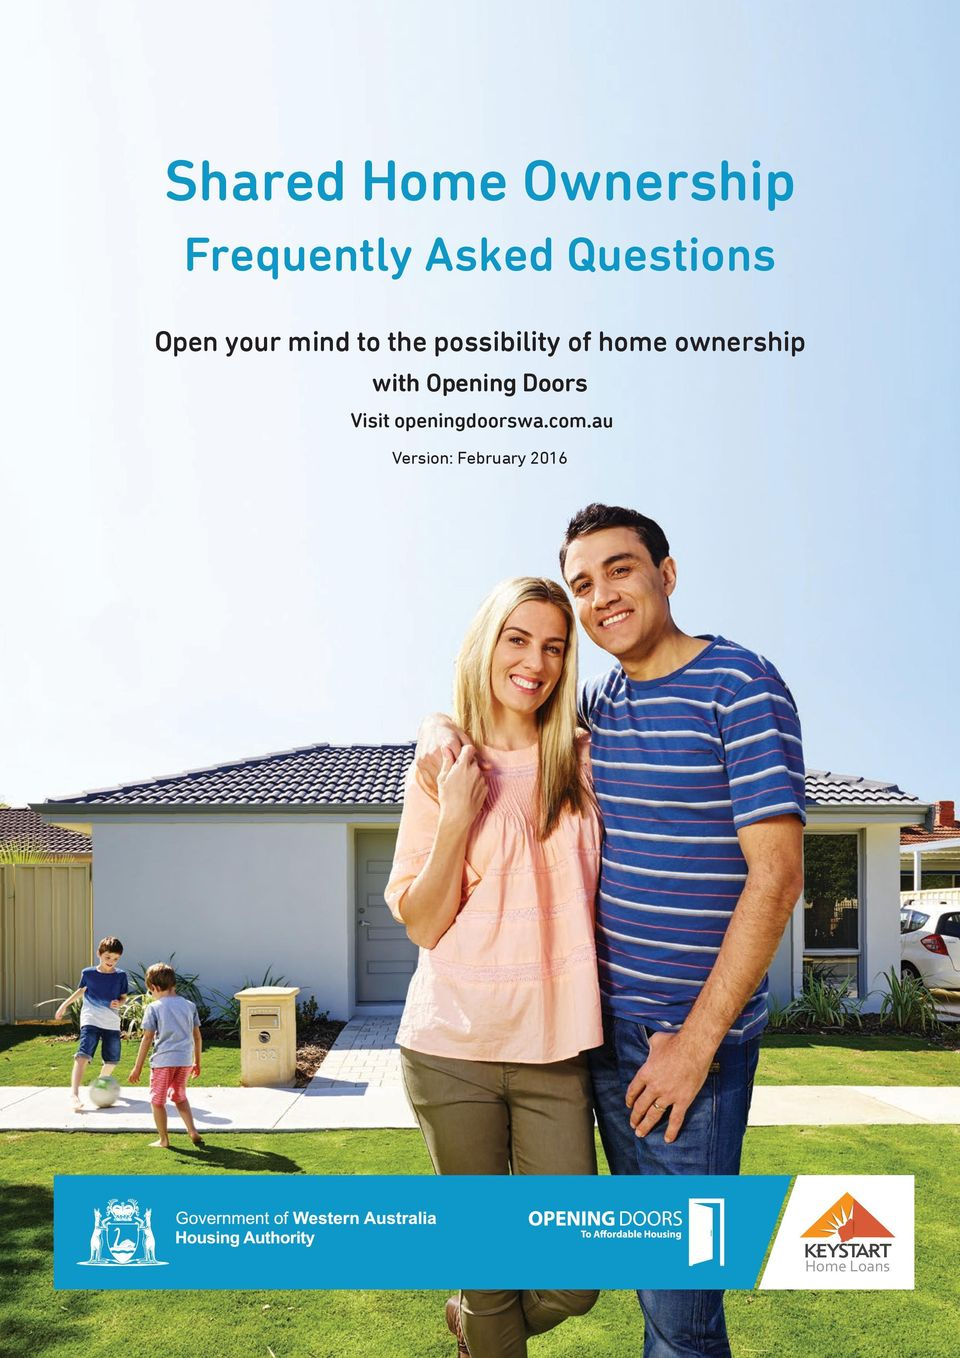 of home ownership with Opening Doors Visit